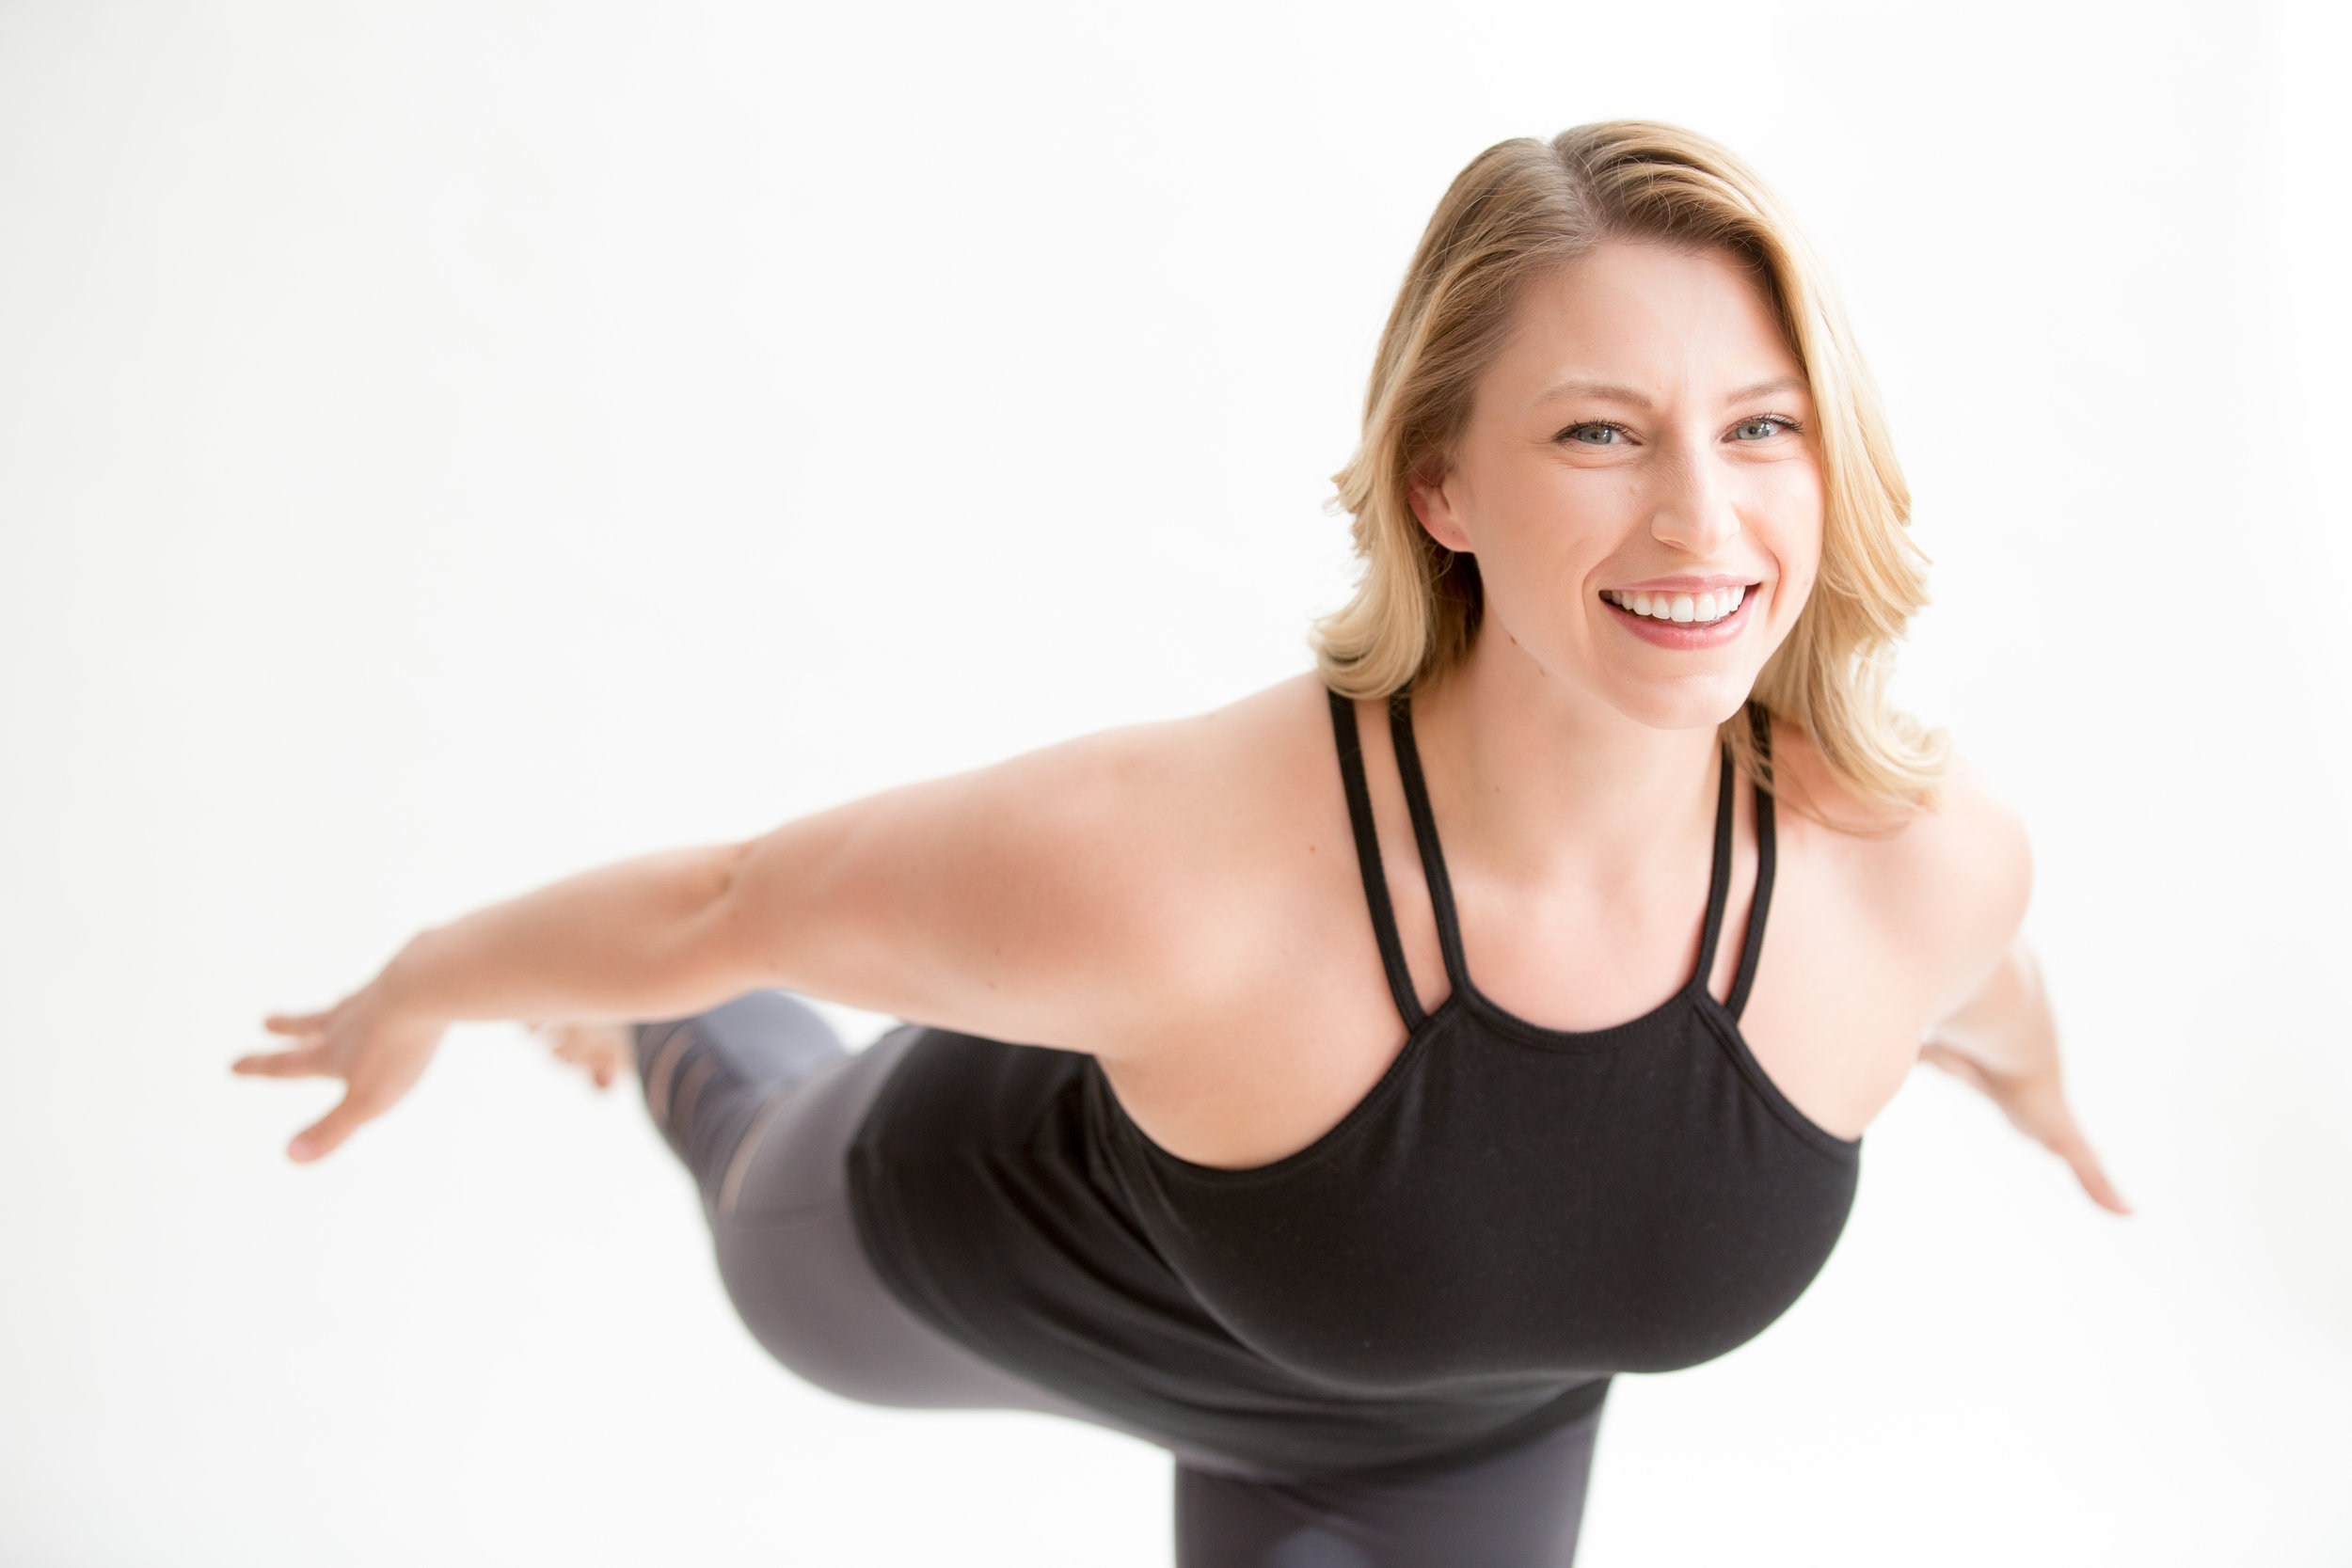 Hello there! - I'm so glad you found your way to Meditation & Melismas, my blog exploring the intersection of the practices of yoga and classical singing.